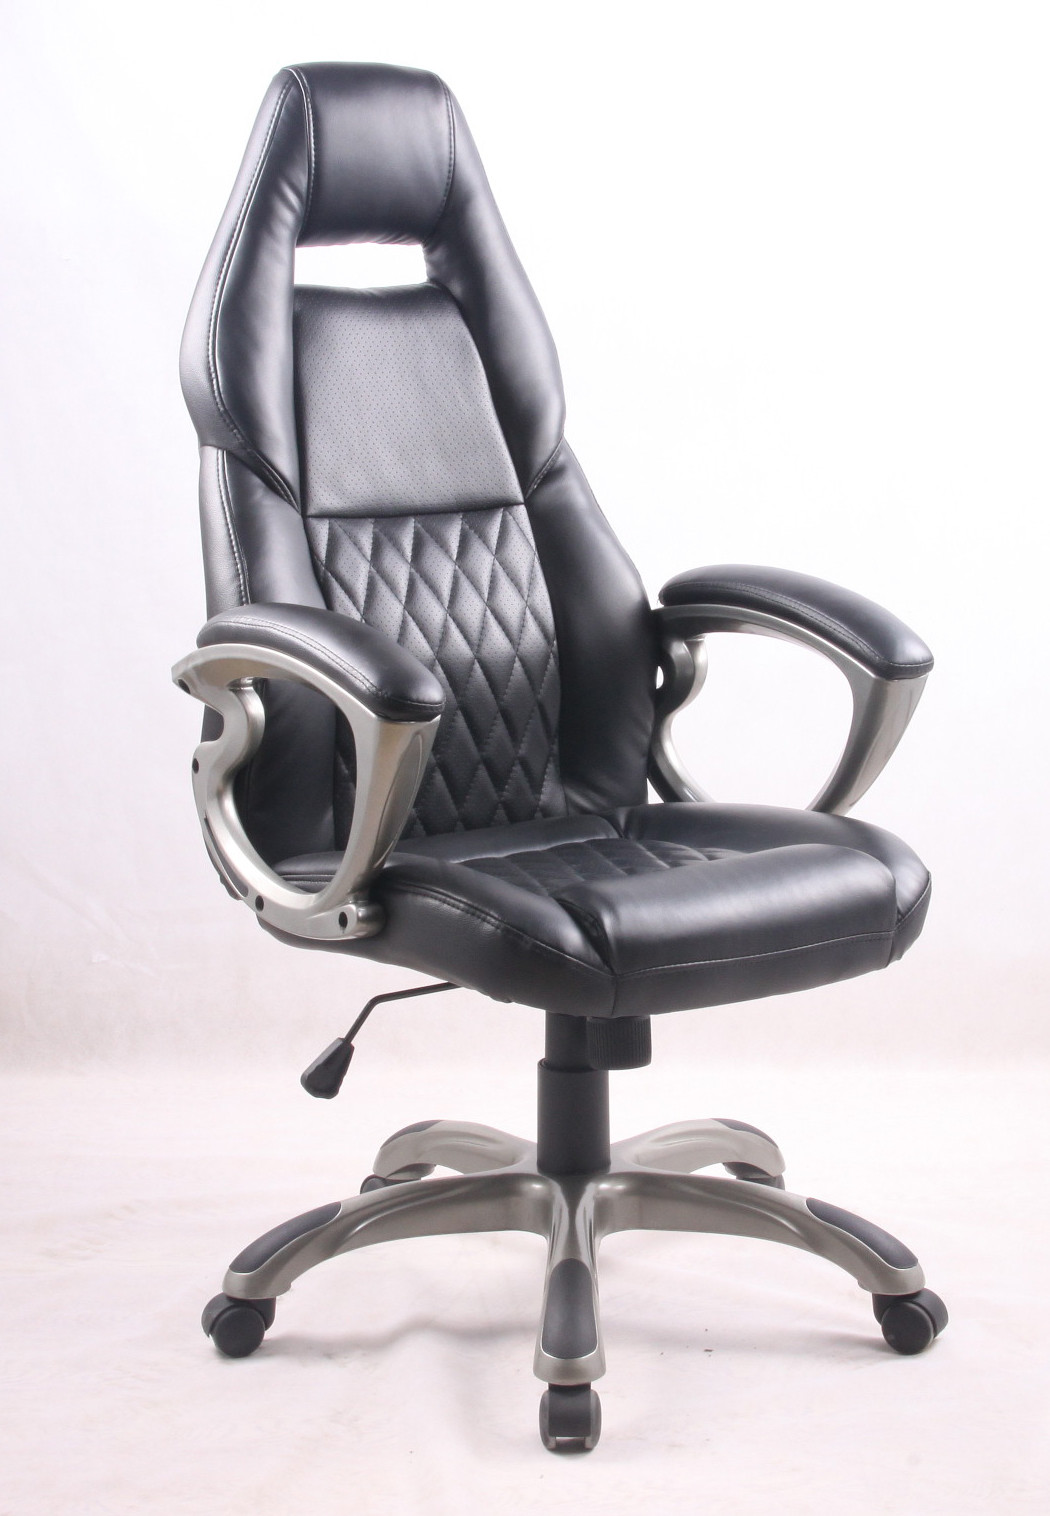 Black PU Porsche Racing Office Chair with Painting Armrest Executive Leather Office Chair